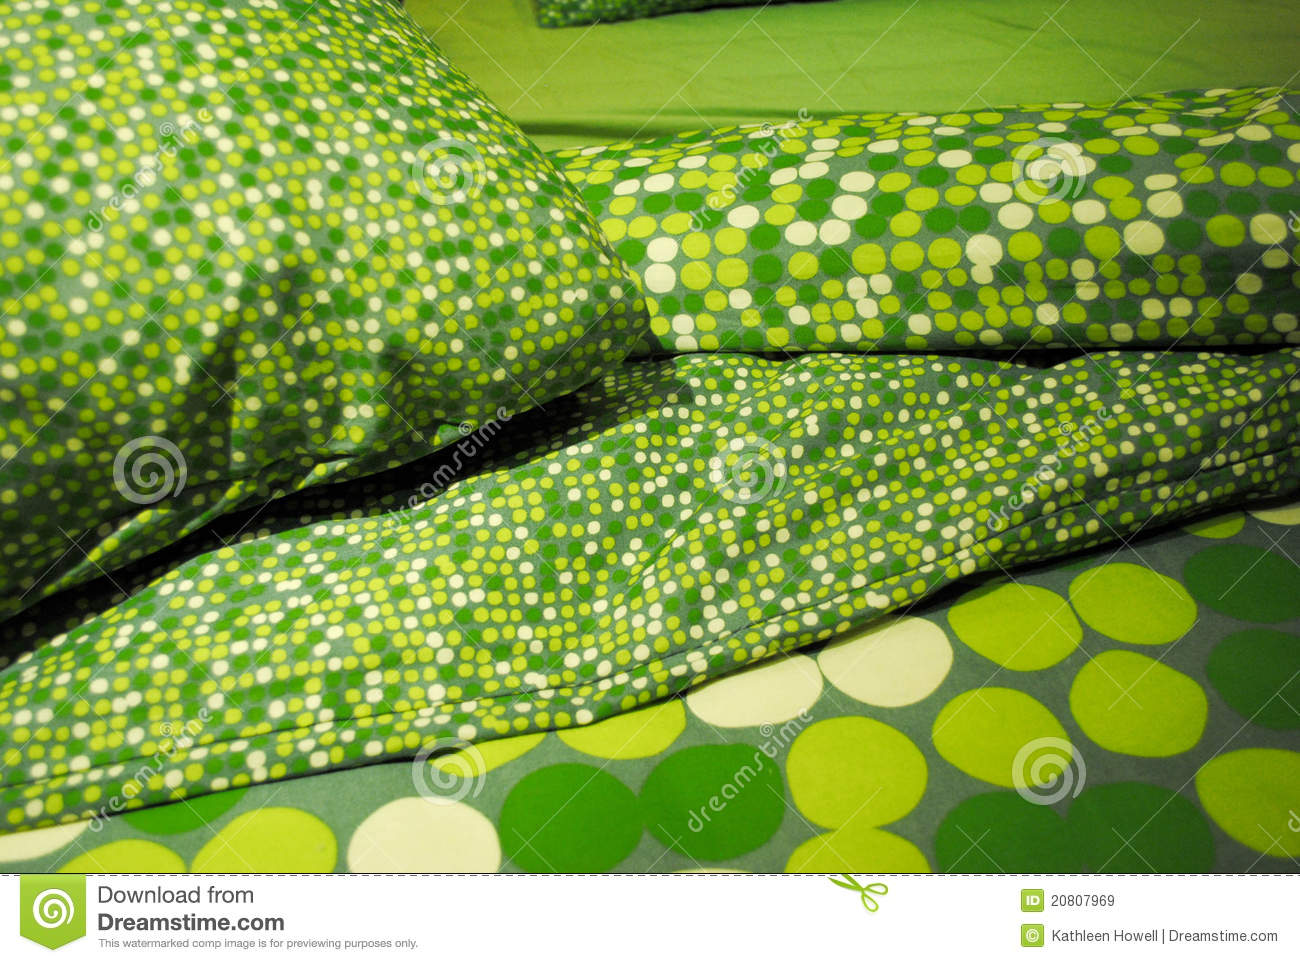 Bettwaesche Clipart Green Bedding Royalty Free Stock Images Image 20807969